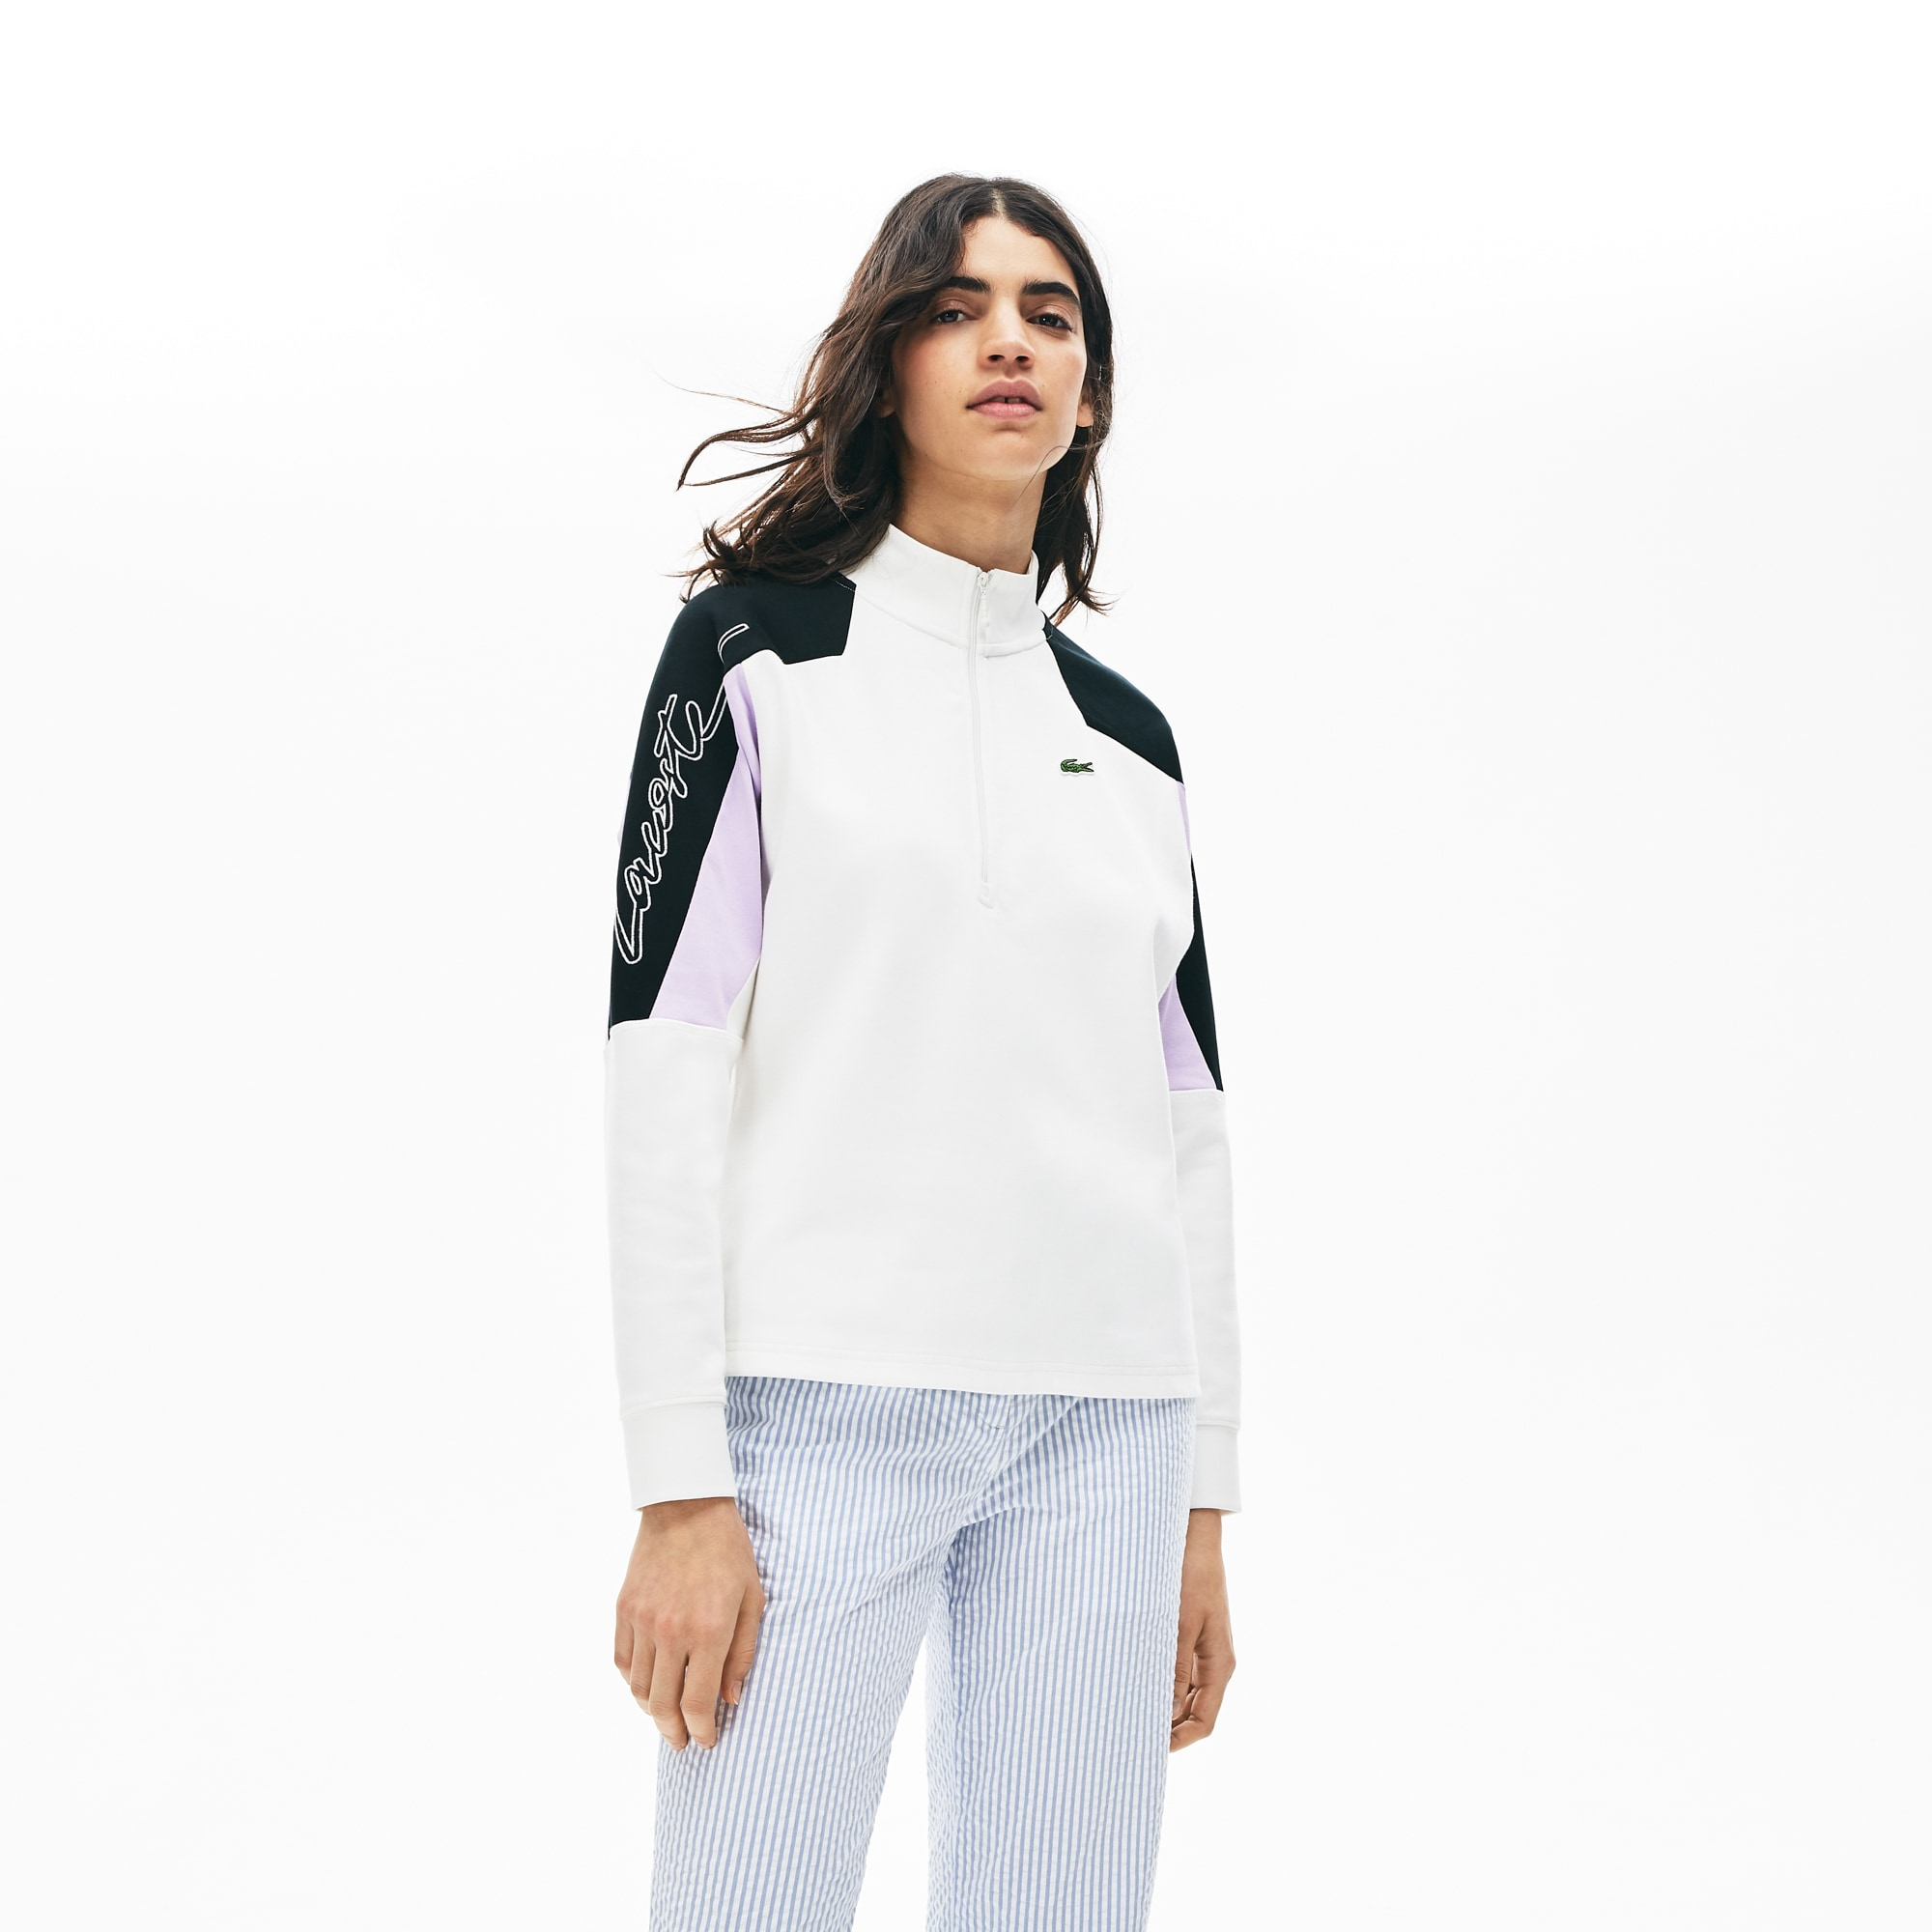 Women's Lacoste LIVE Colourblock Cotton Blend Zip Sweatshirt